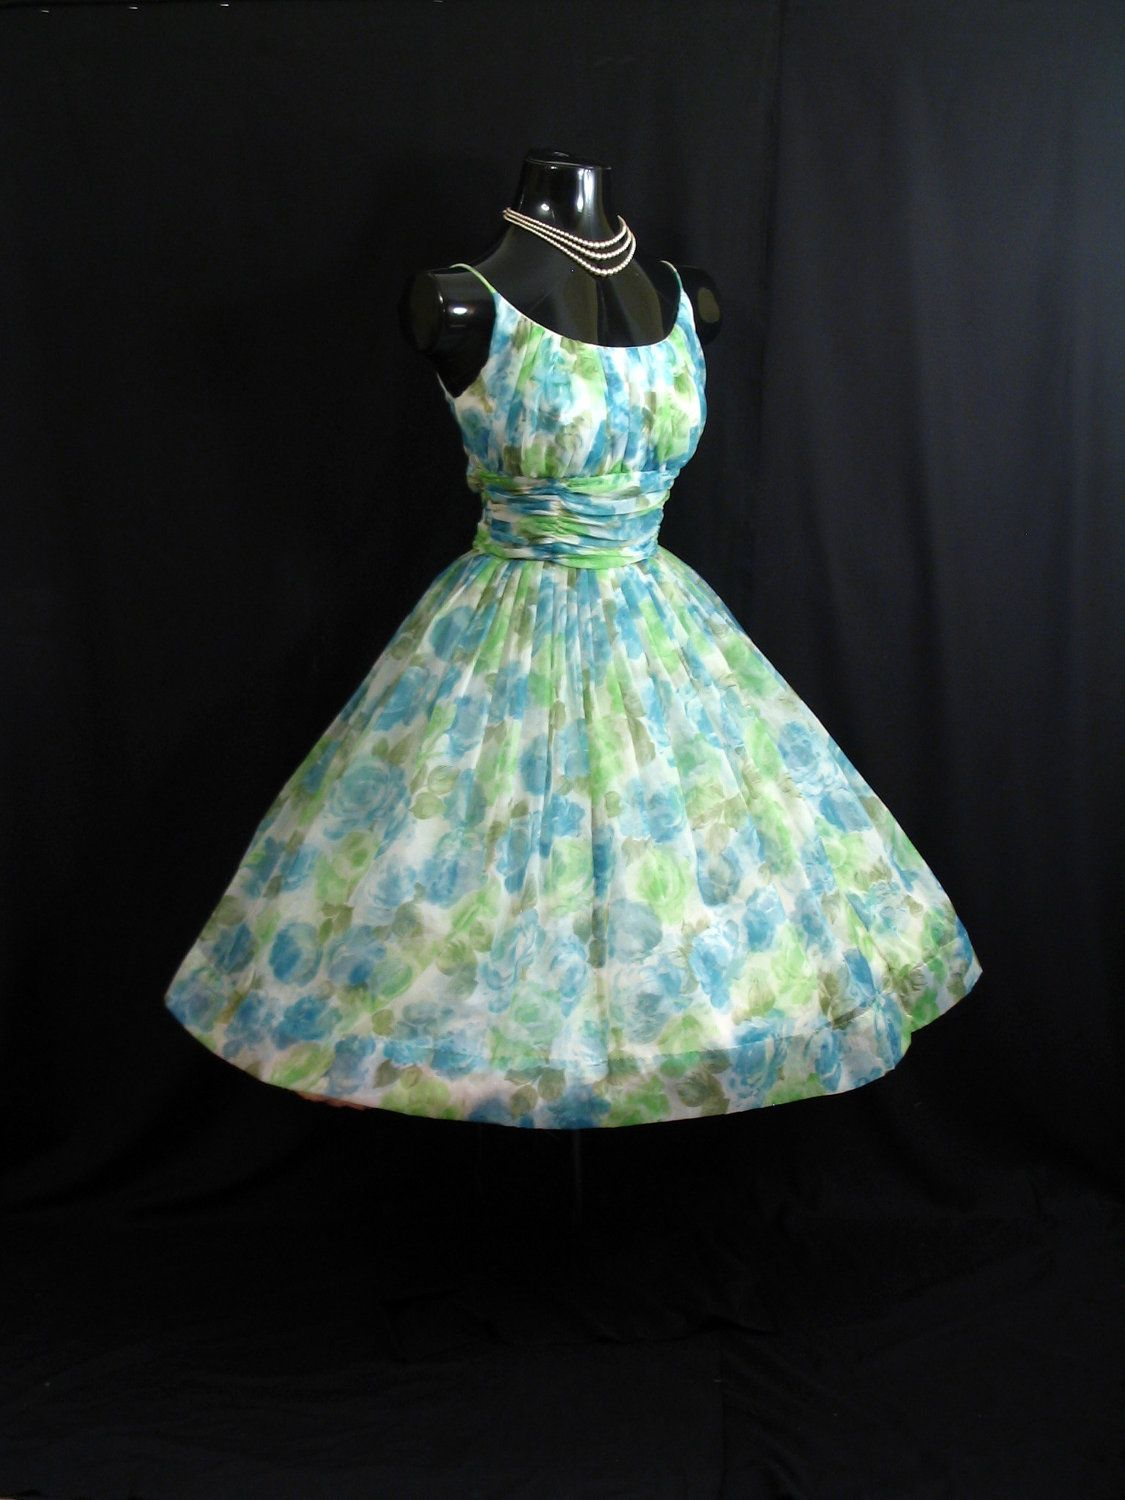 Vintage 1950's 50s Blue Green Ruched Floral Chiffon Organza Party Prom Wedding Dress Gown. $349.99, via Etsy. - SO Betty Draper!